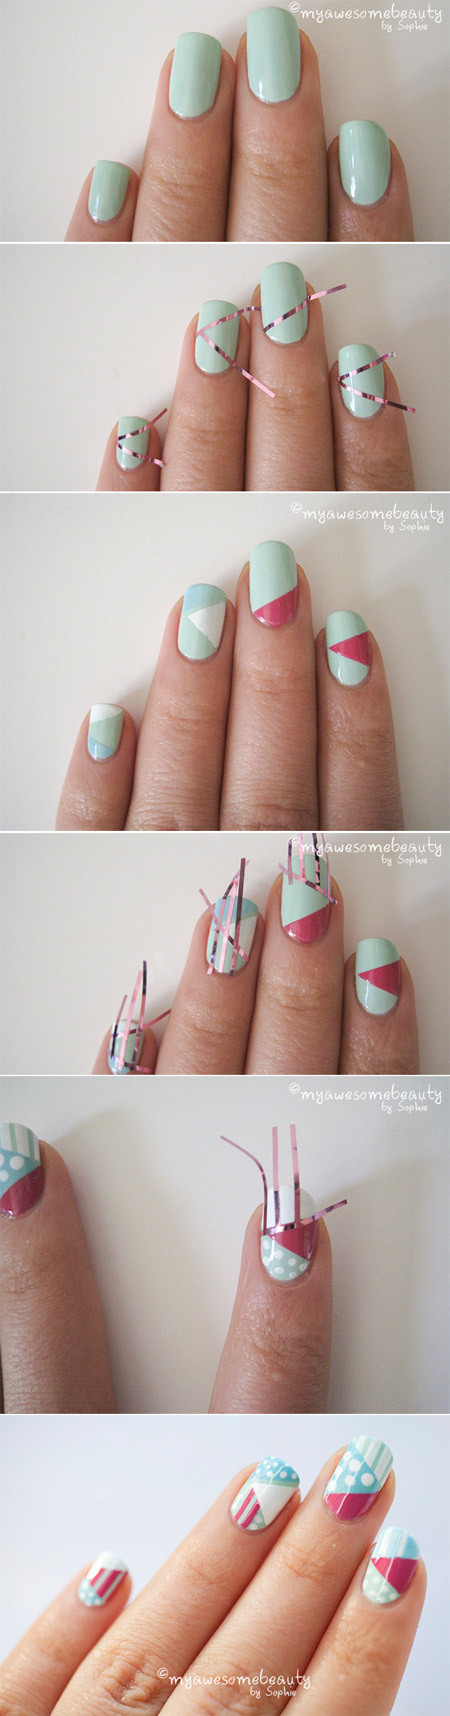 Nail Designs Made With Tape